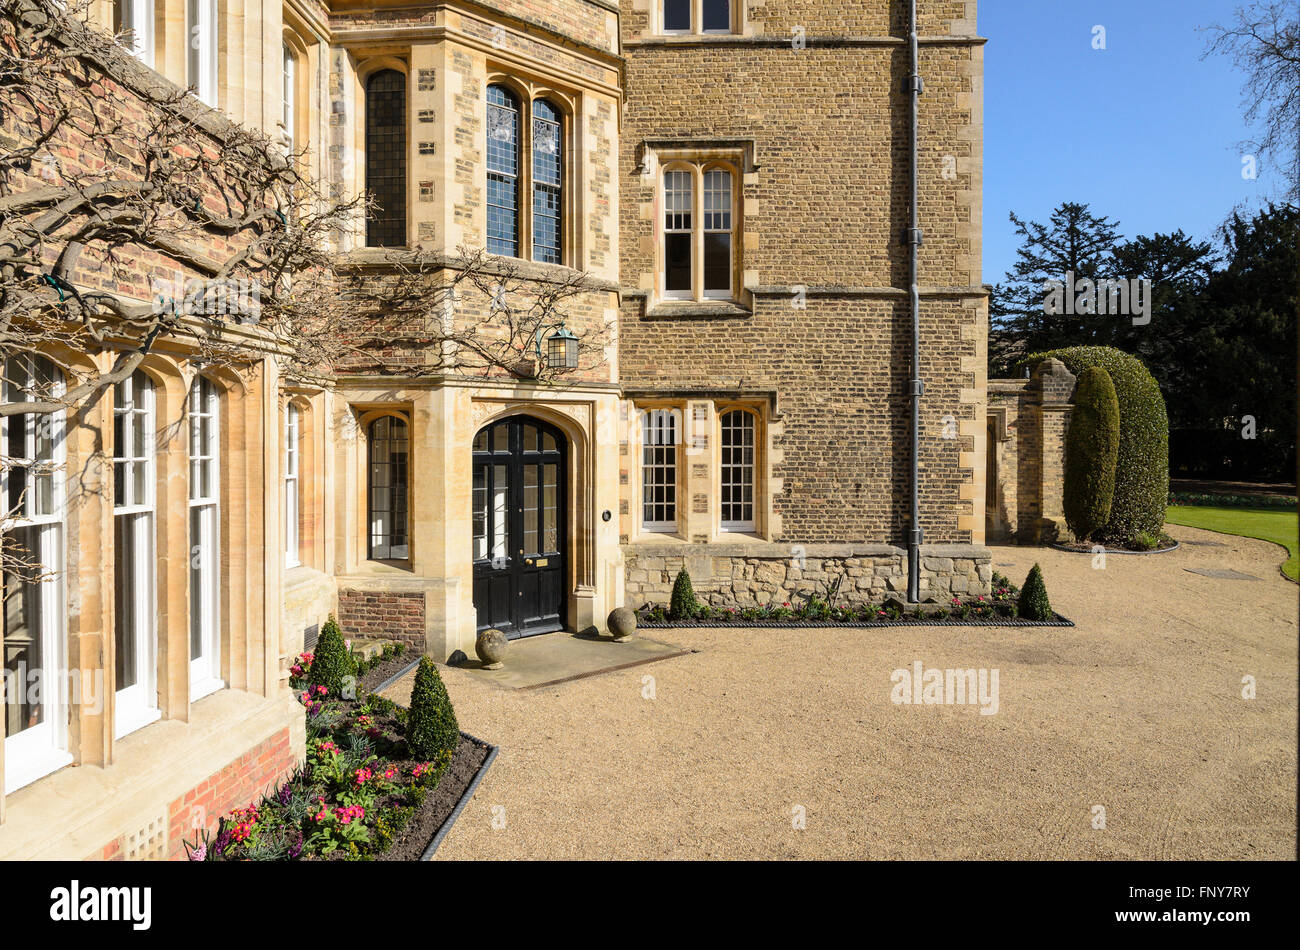 The Masters Lodge, Jesus College, University of Cambridge, Cambridge, England, UK. - Stock Image